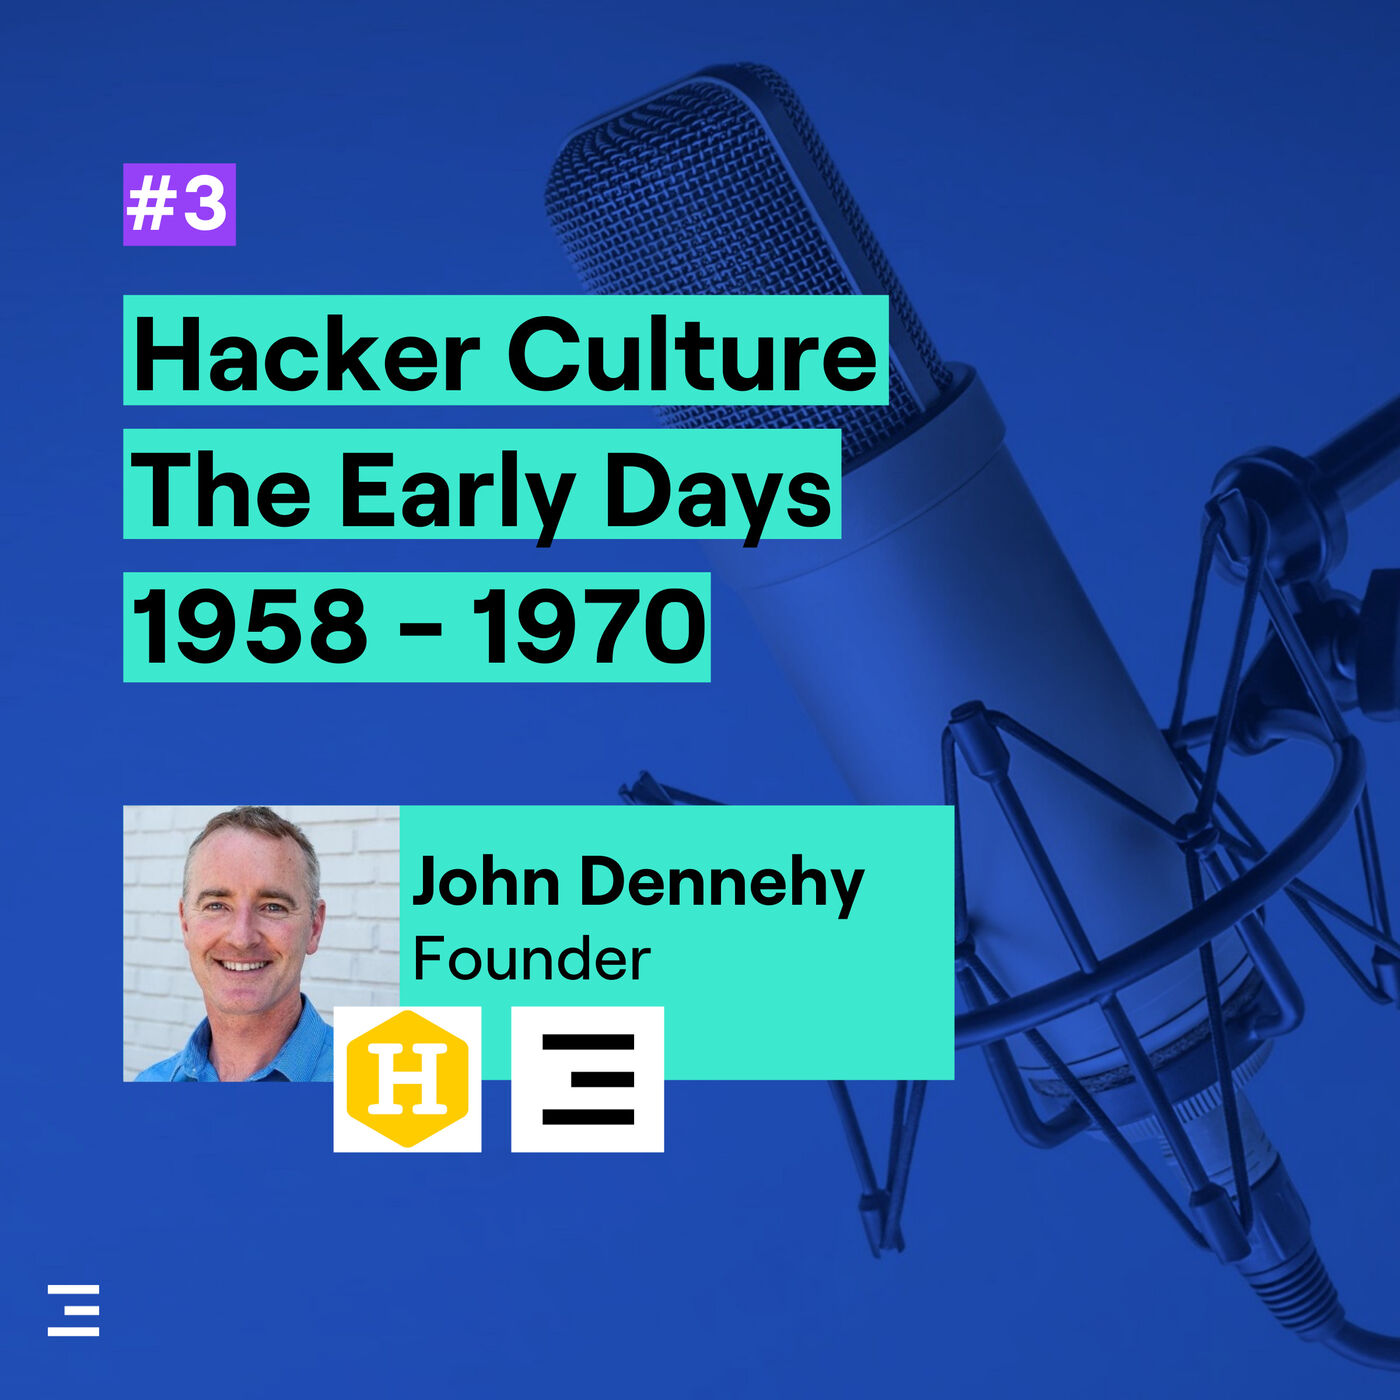 3. Hacker Culture - The Early Days, 1958 - 1970